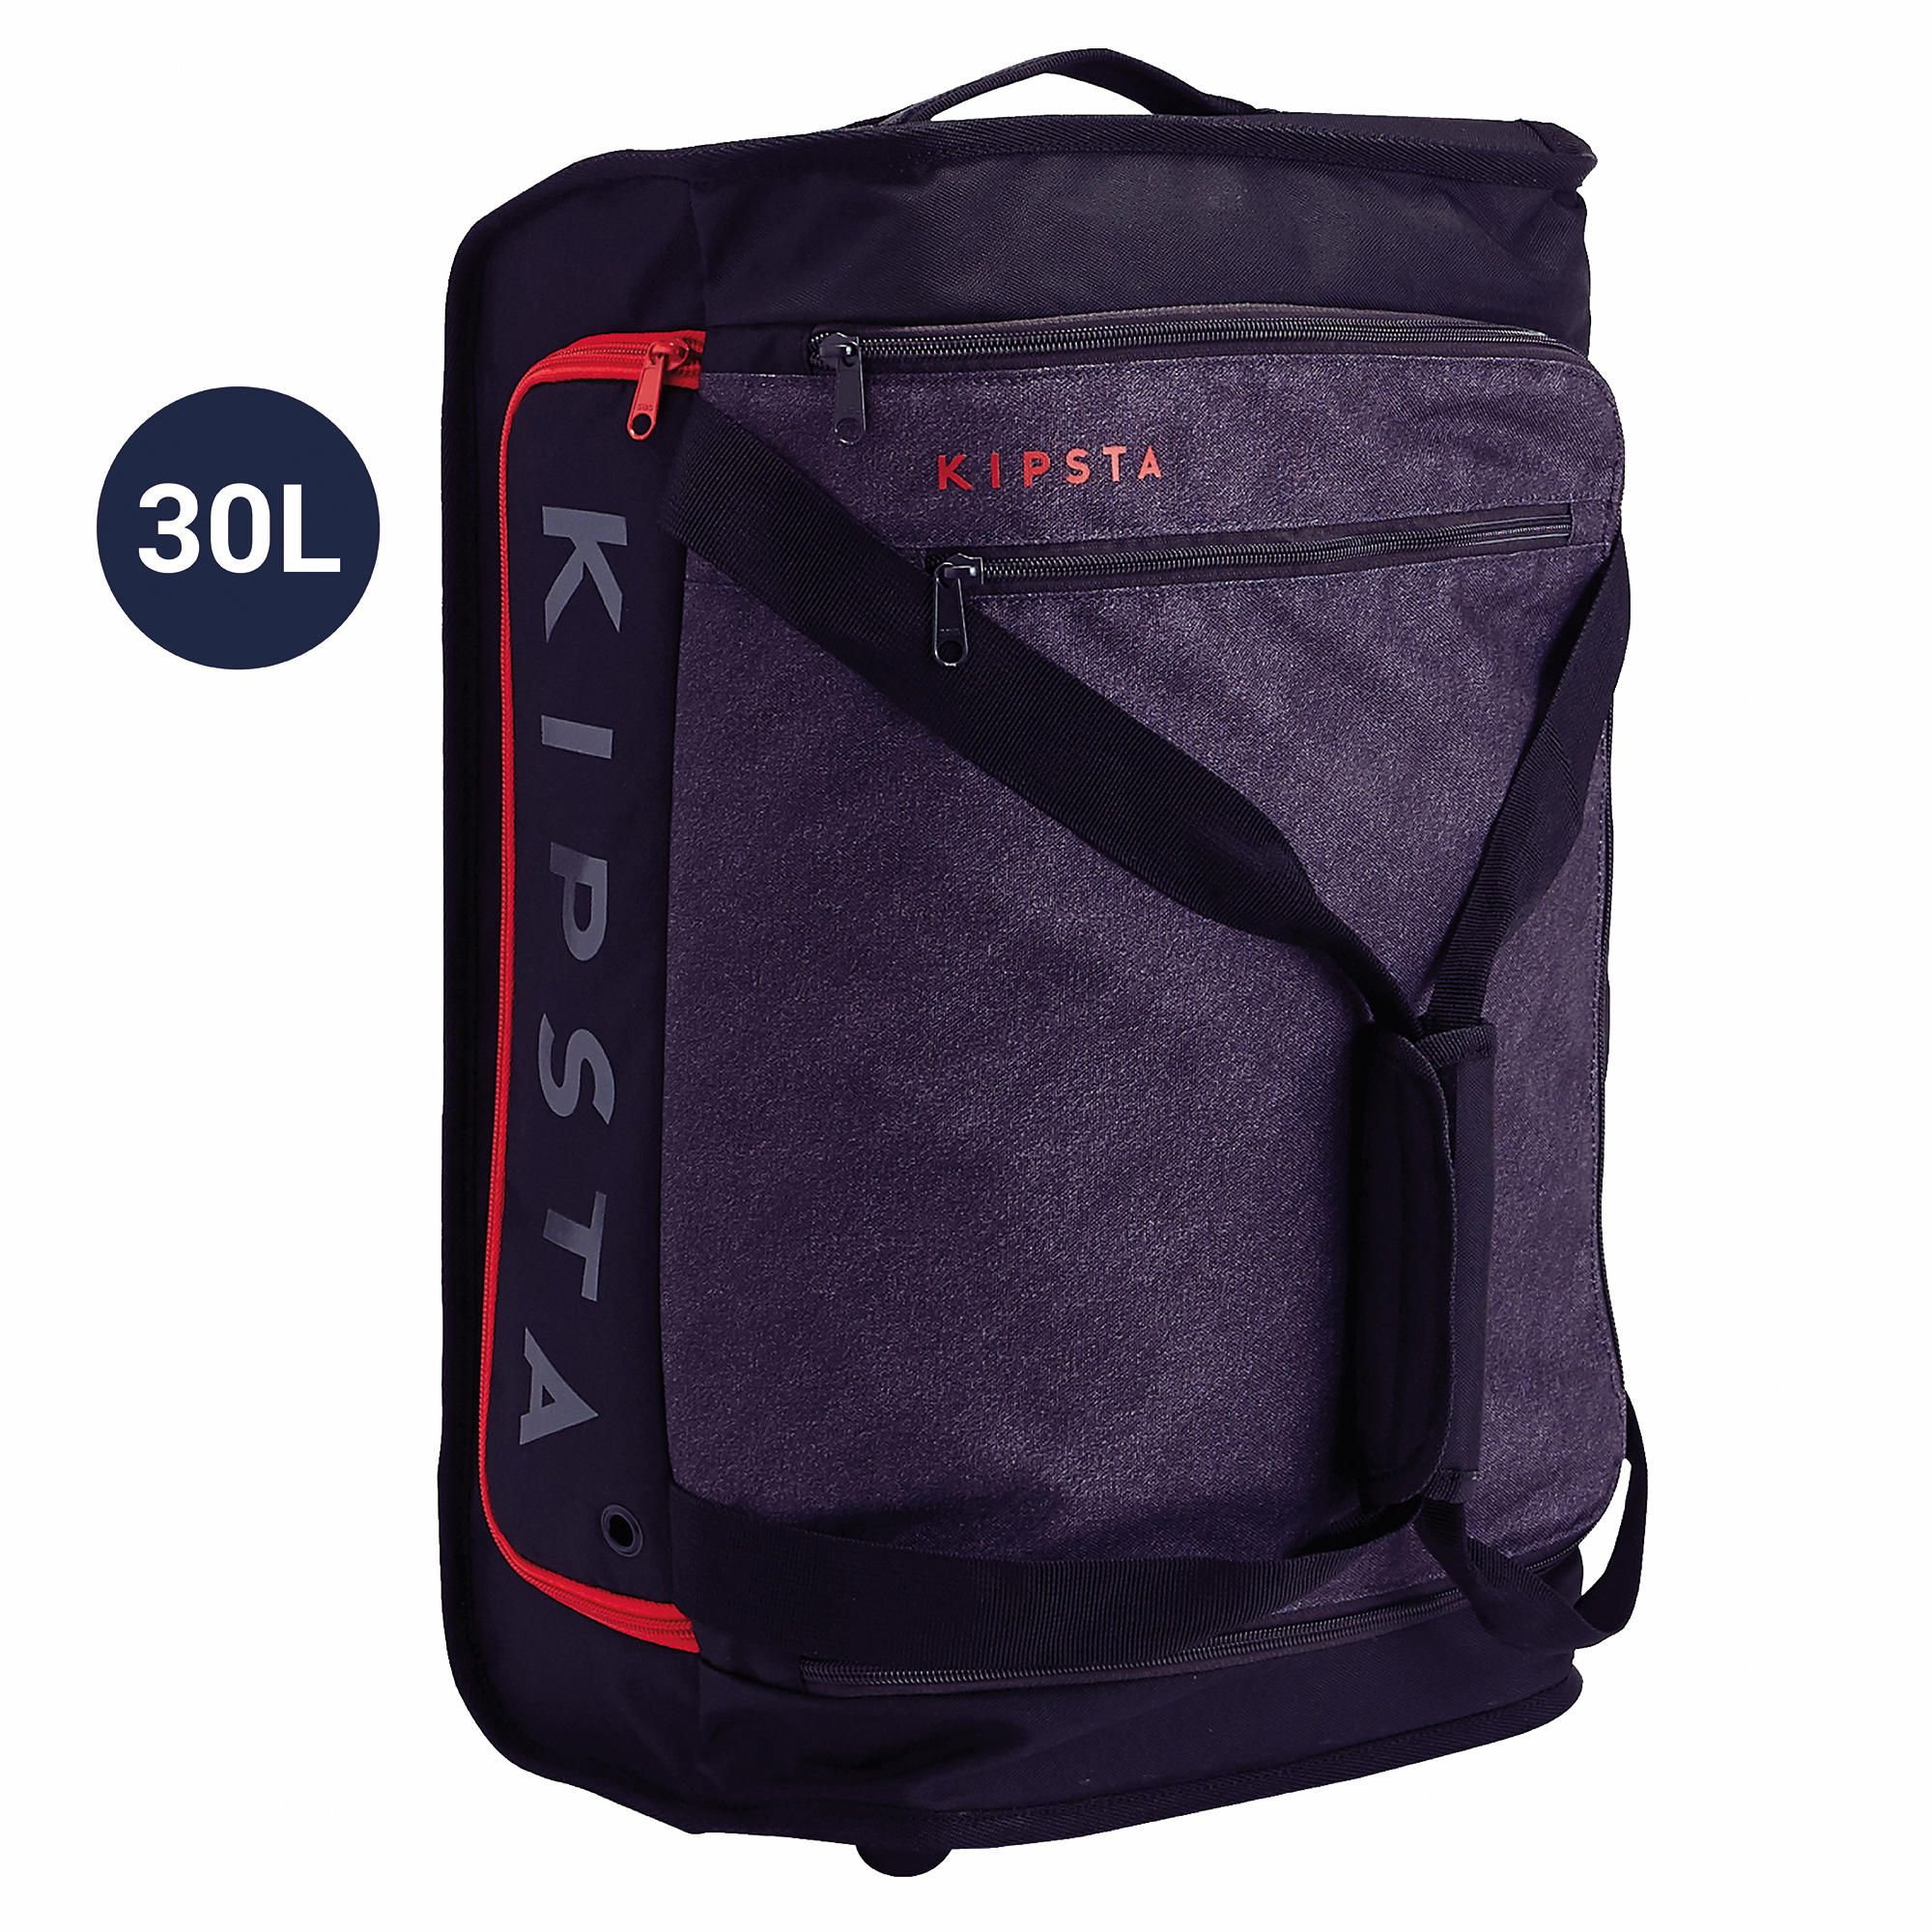 Classic 30 L Rolling Team Sports Bag - Black/Red